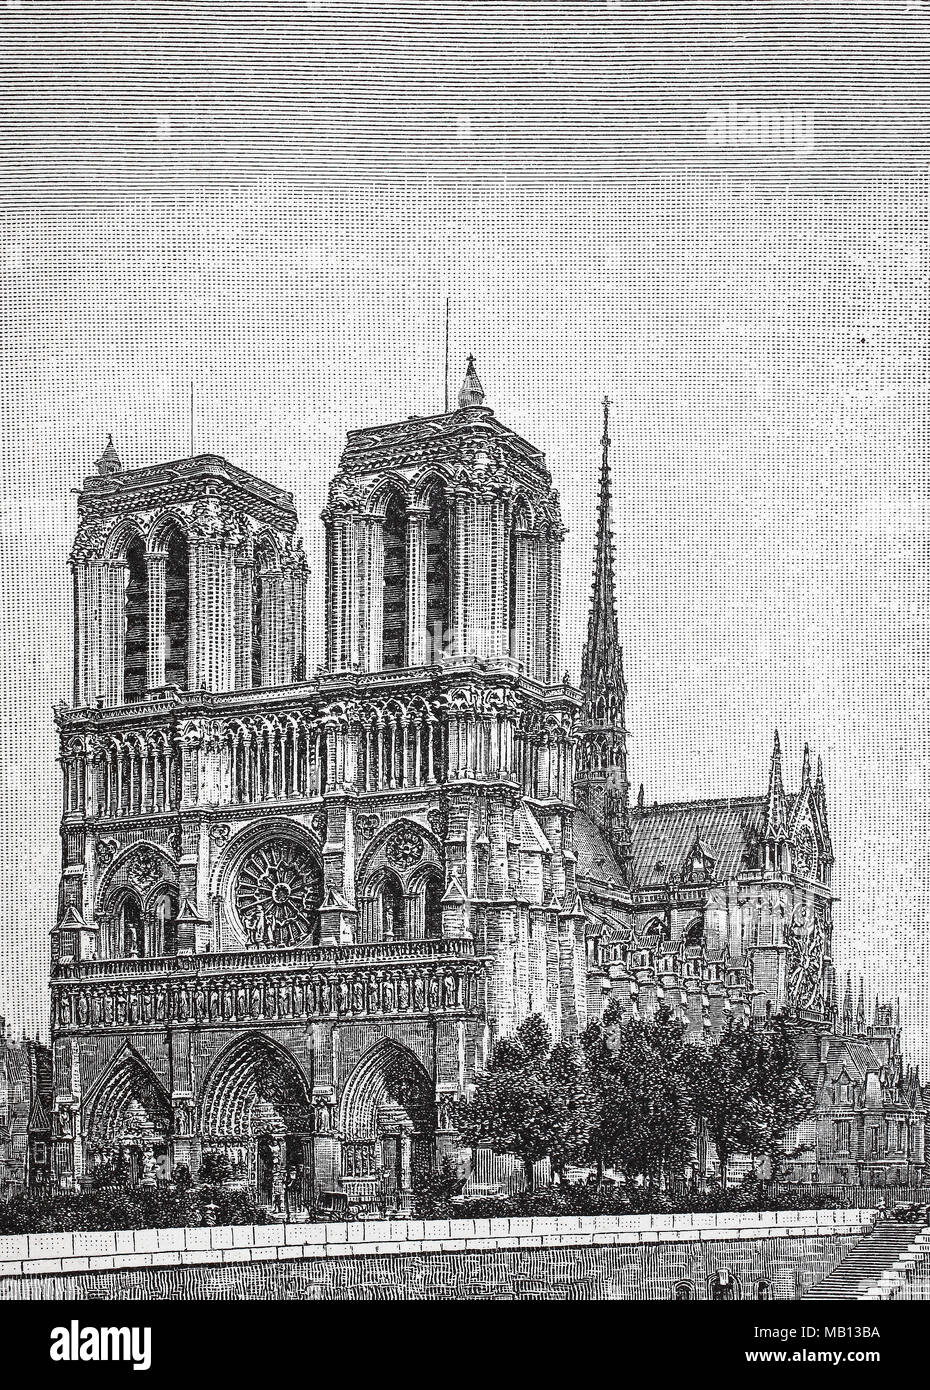 Notre Dame, Paris, Frankreich. Notre-Dame de Paris, Our Lady of Paris, also known as Notre-Dame Cathedral or simply Notre-Dame, is a medieval Catholic cathedral on the Île de la Cité in the fourth arrondissement of Paris, France, digital improved reproduction of an original print from the year 1895 - Stock Image